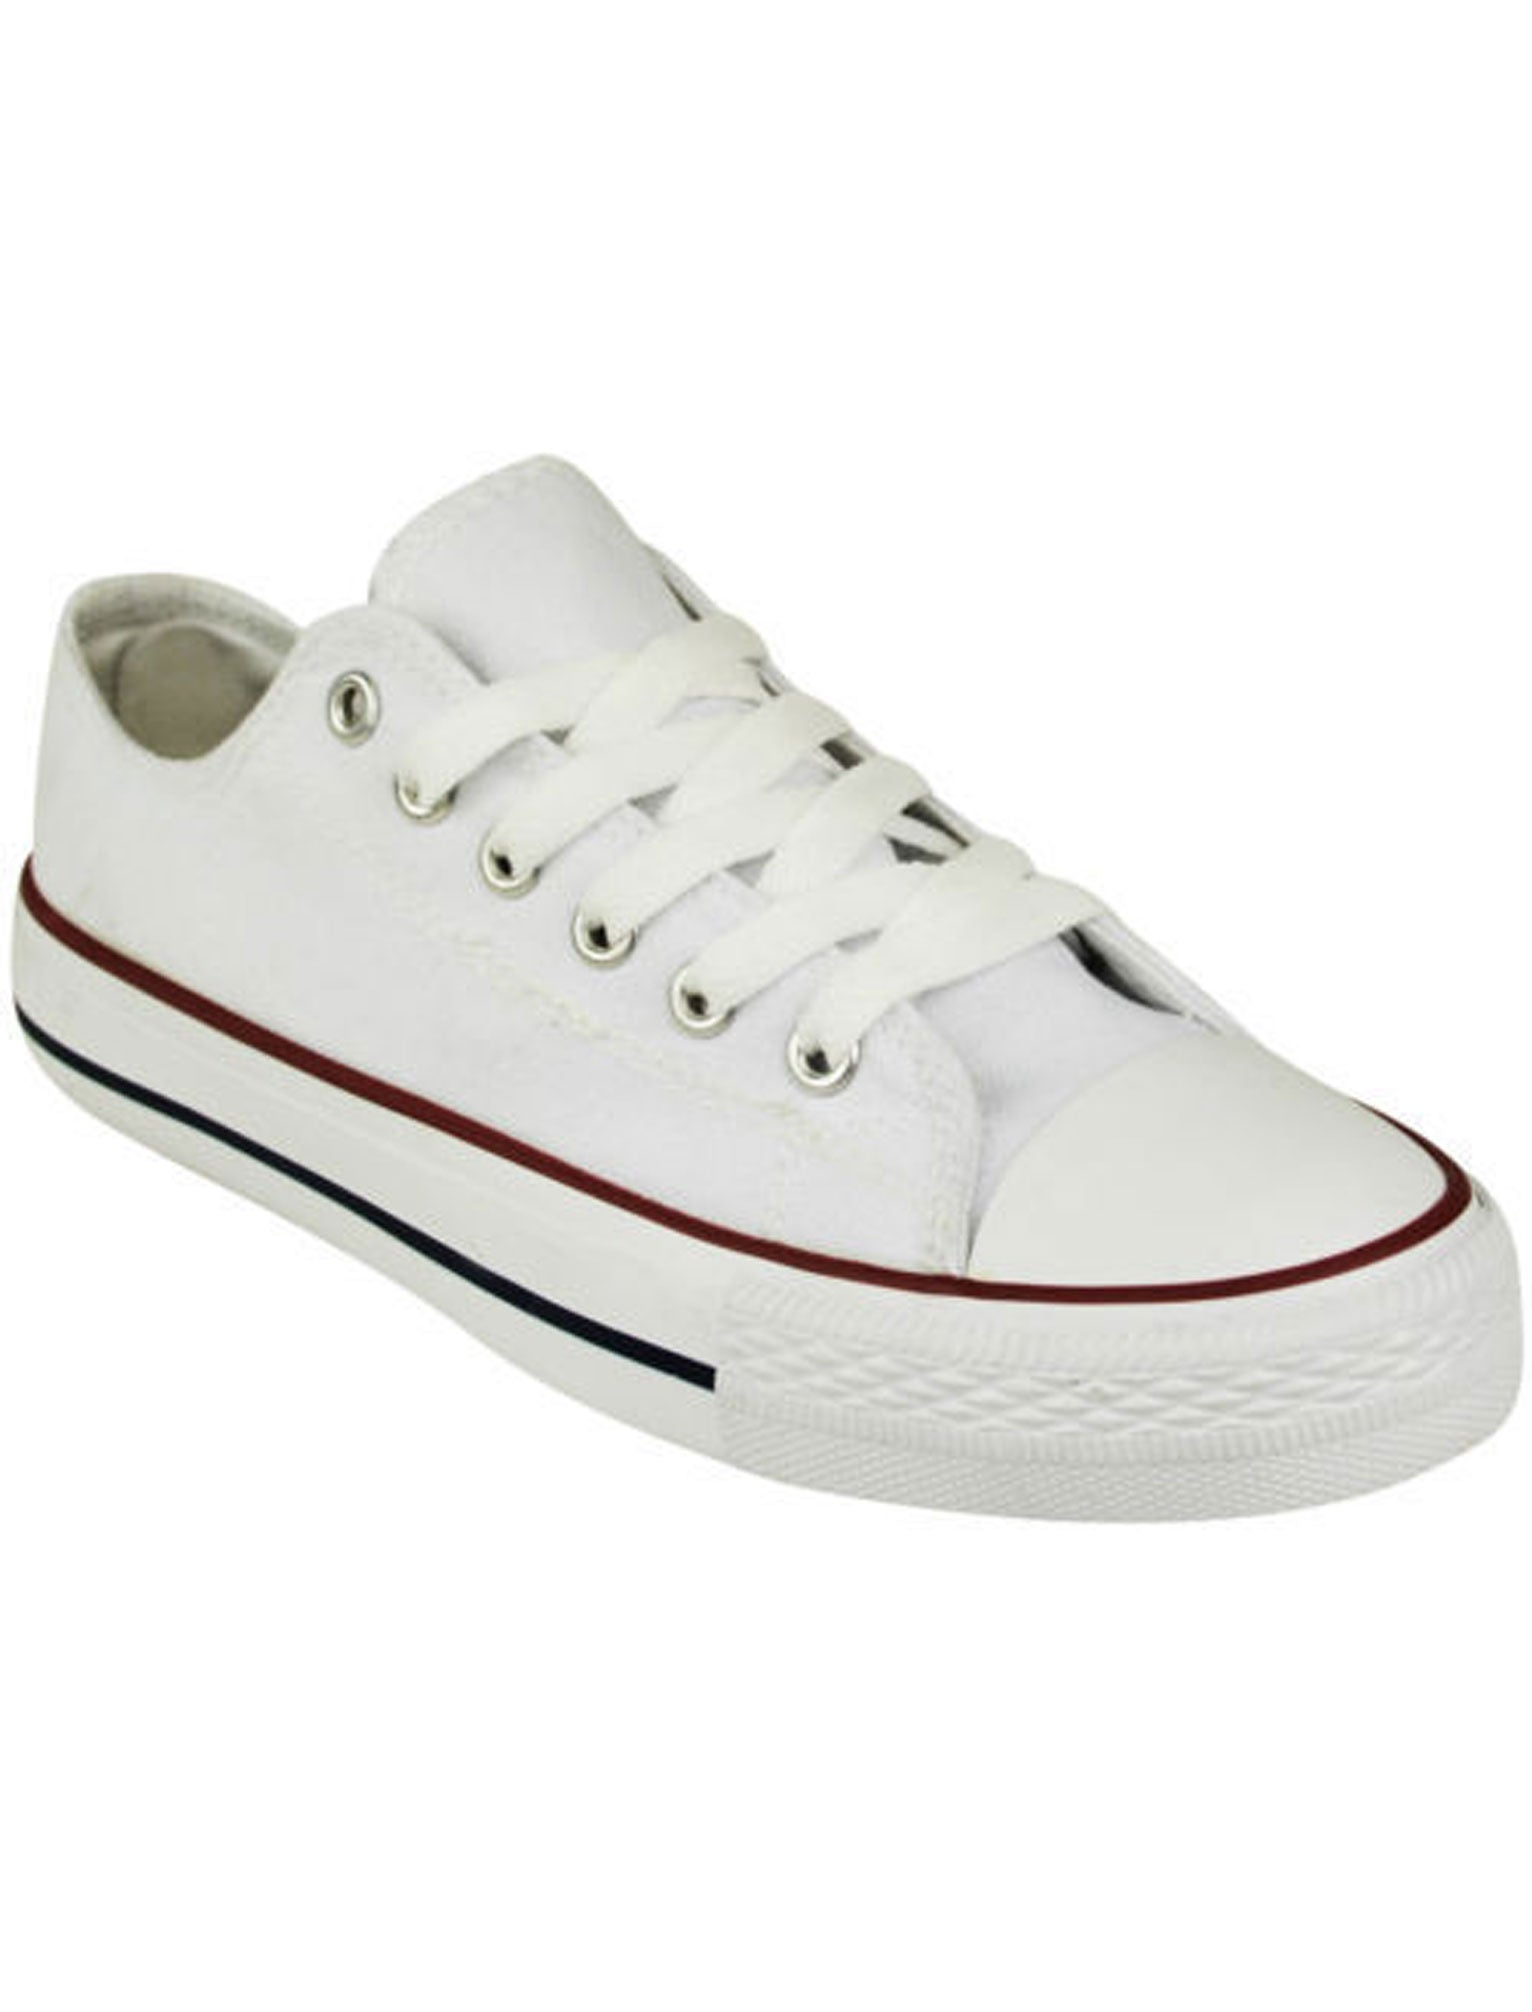 Tokyo Laundry Shoes Ladies canvas lace up plimsolls in white / UK 3